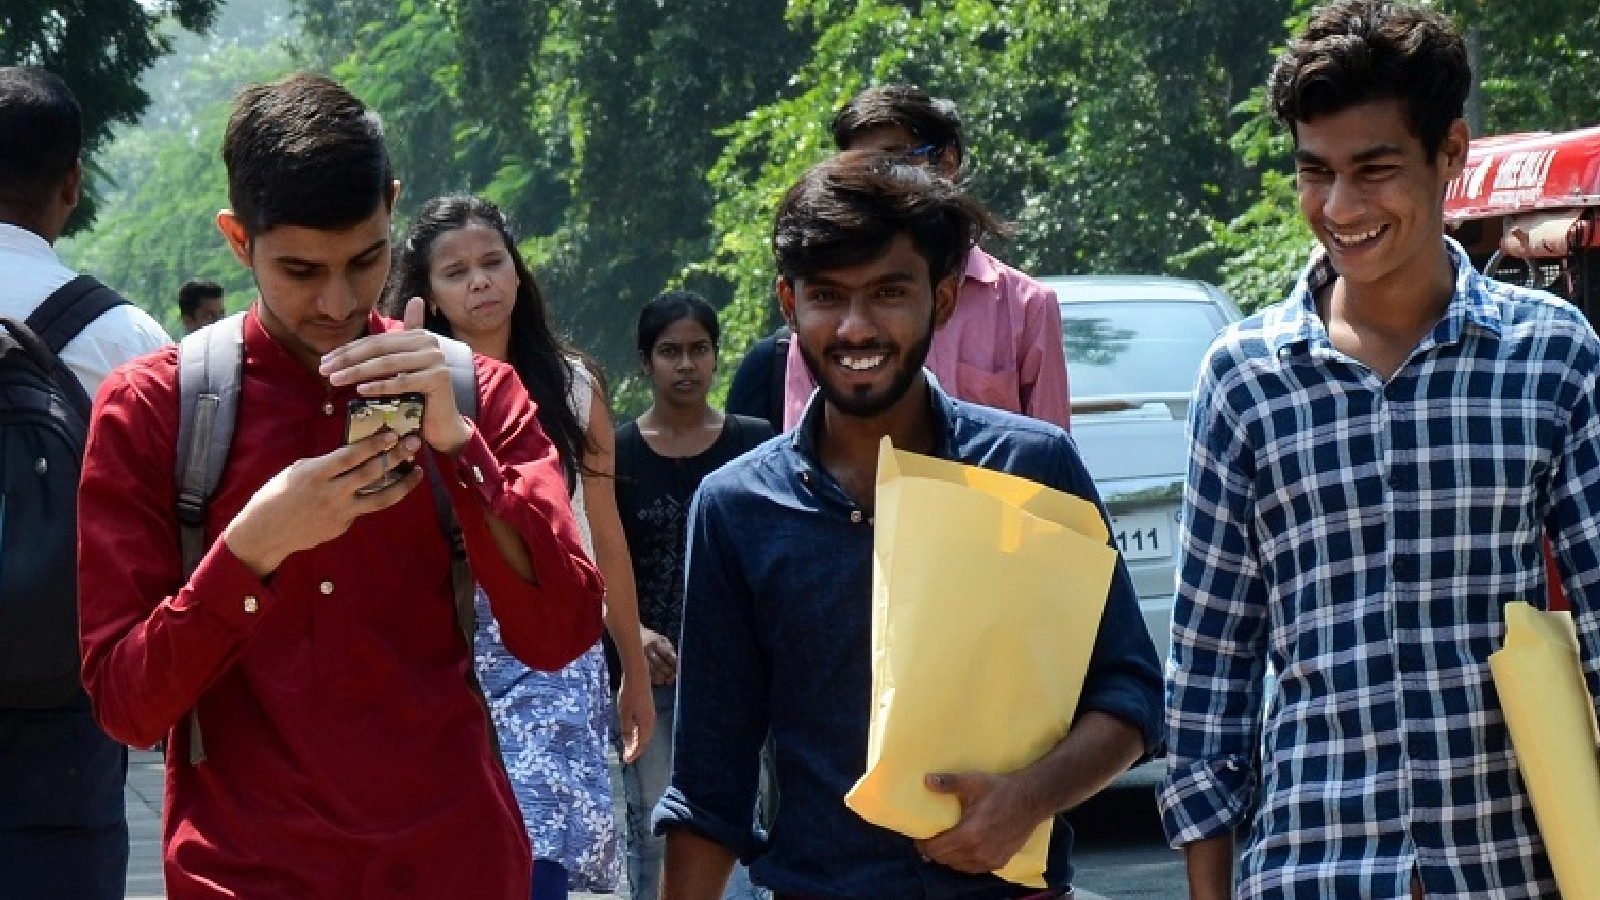 UP Govt to Offer Competitive Exam Allowance, Tablets, Smartphonesto 1 crore Youth